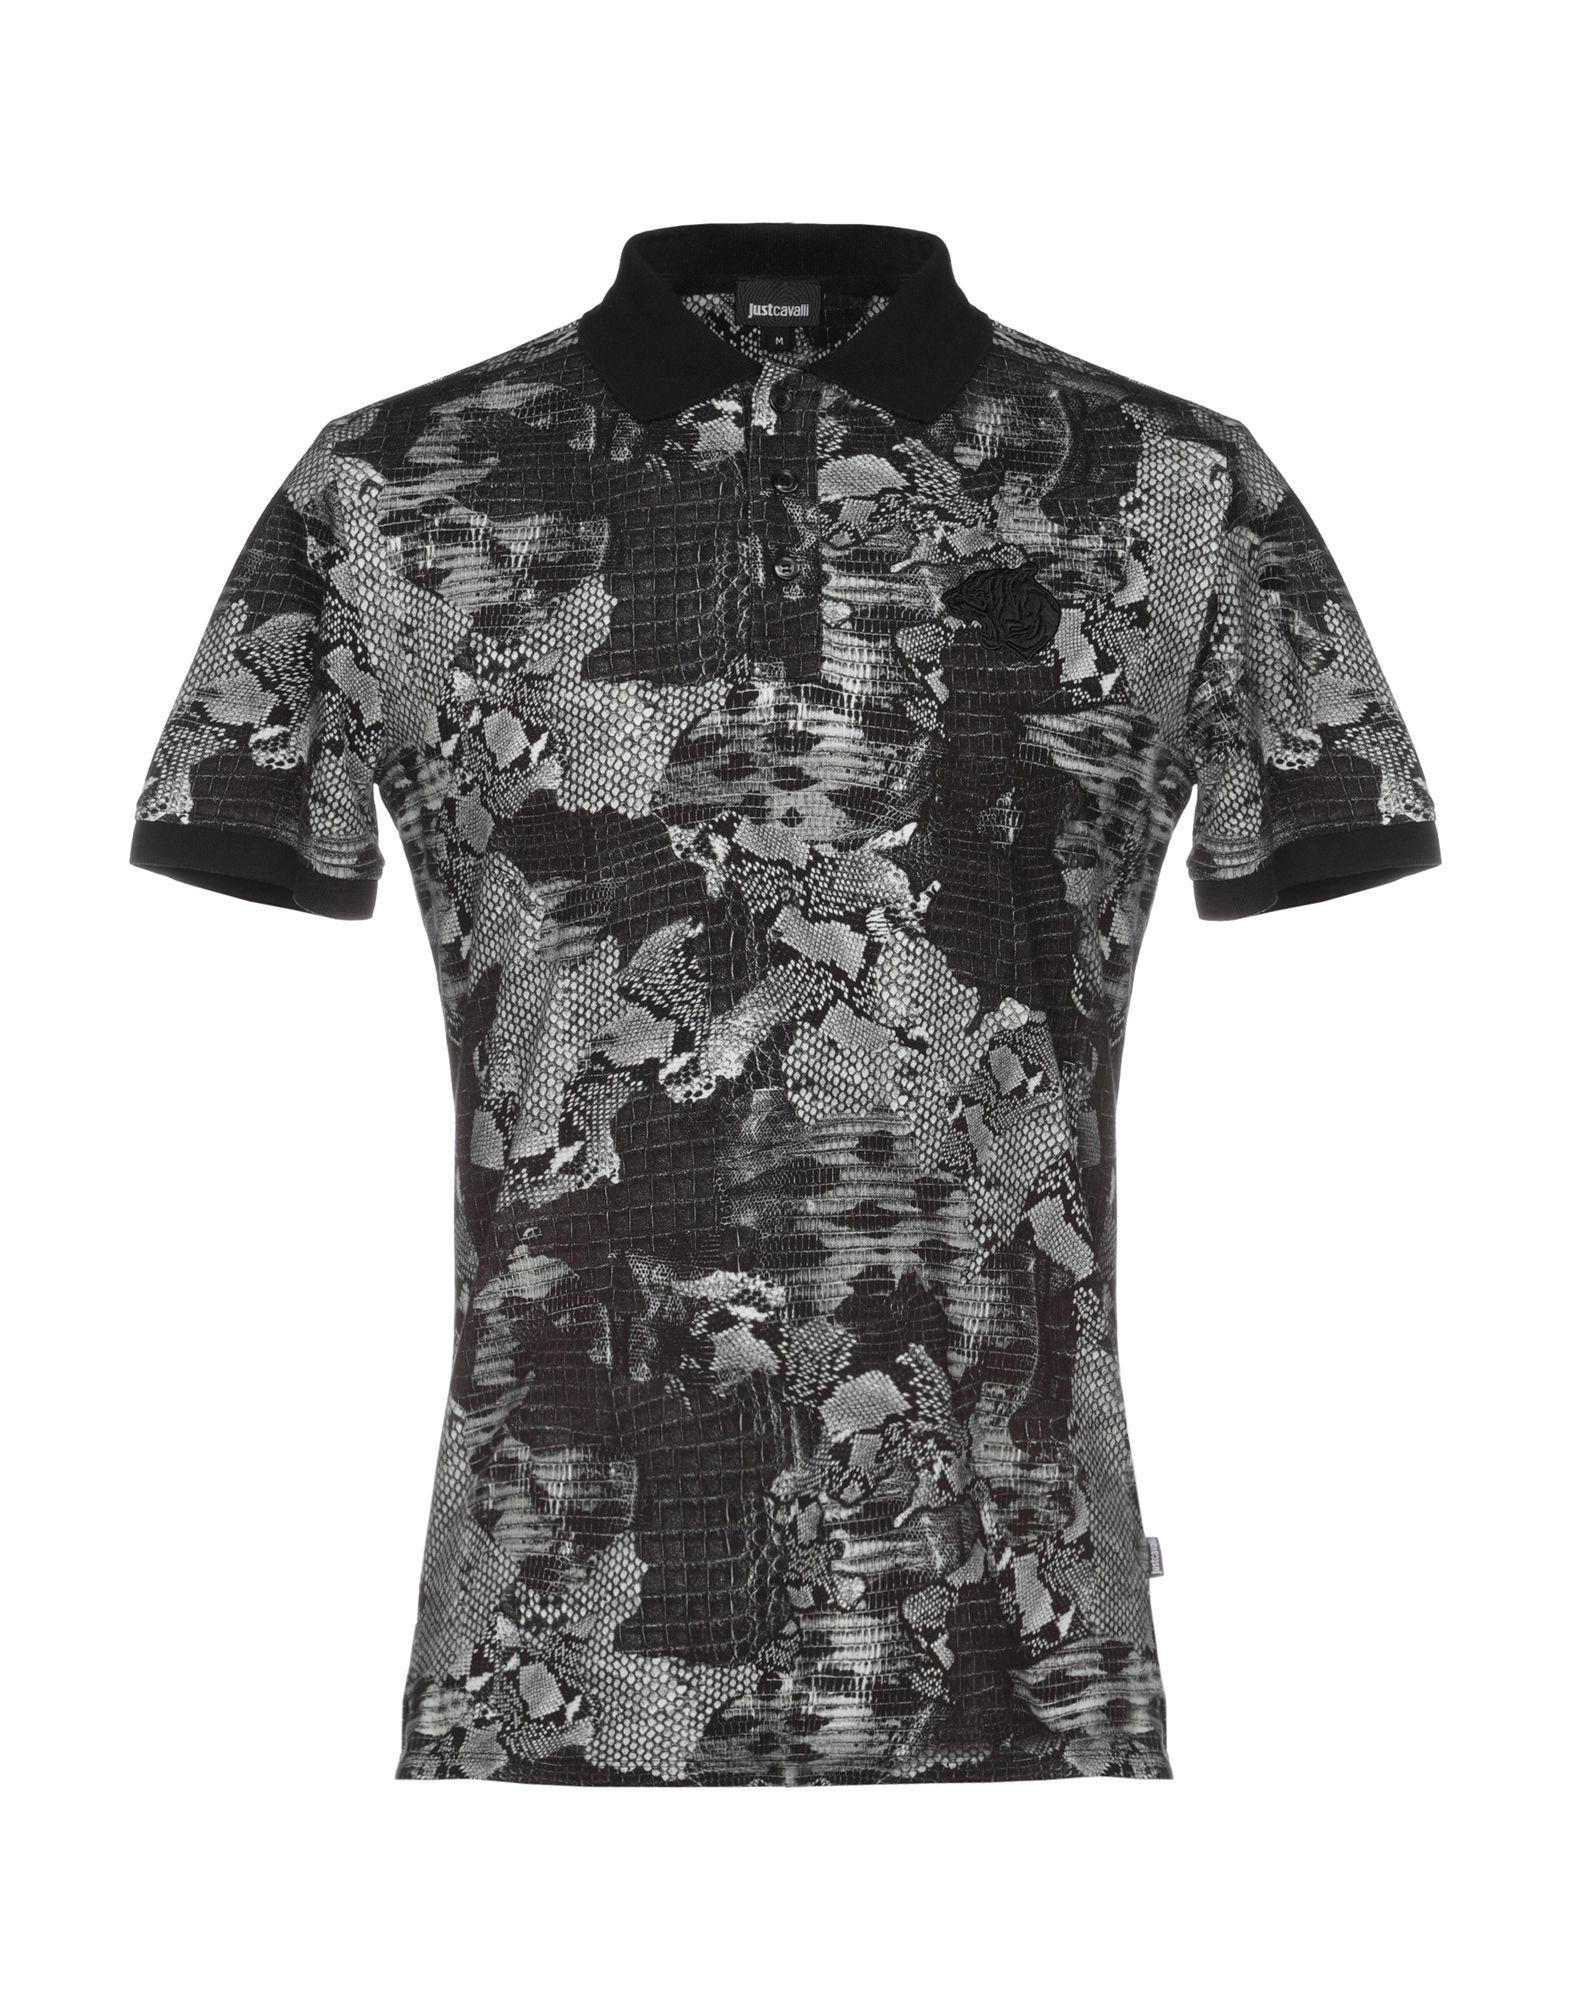 ca9d0fc4f Just Cavalli Polo Shirt in Black for Men - Lyst